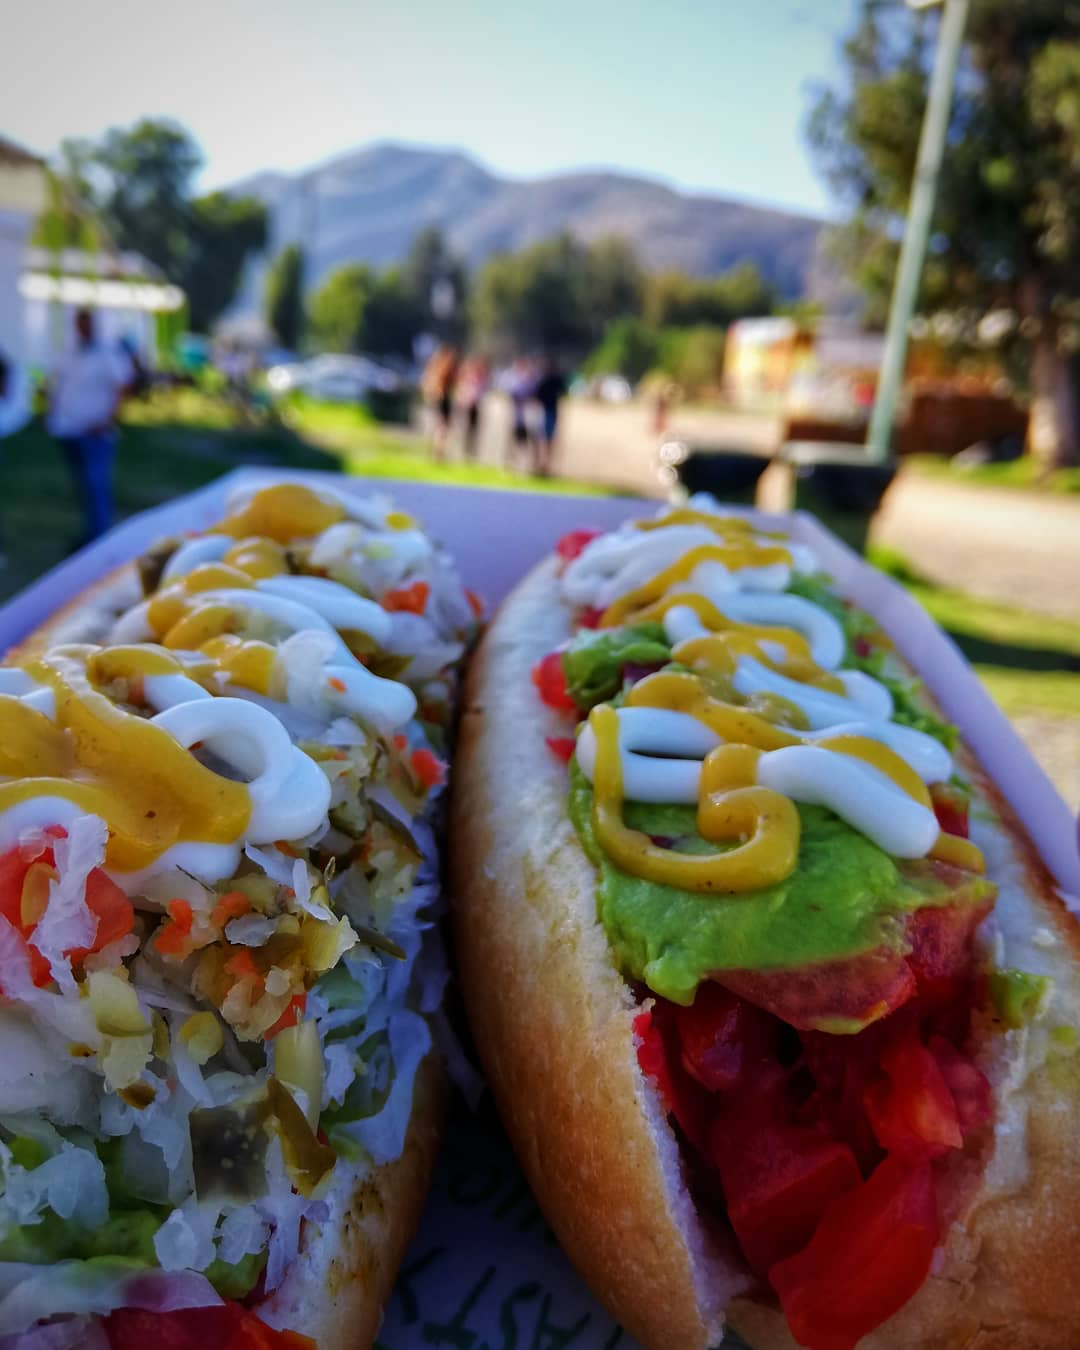 Two completos with different ingredients, ready to eat